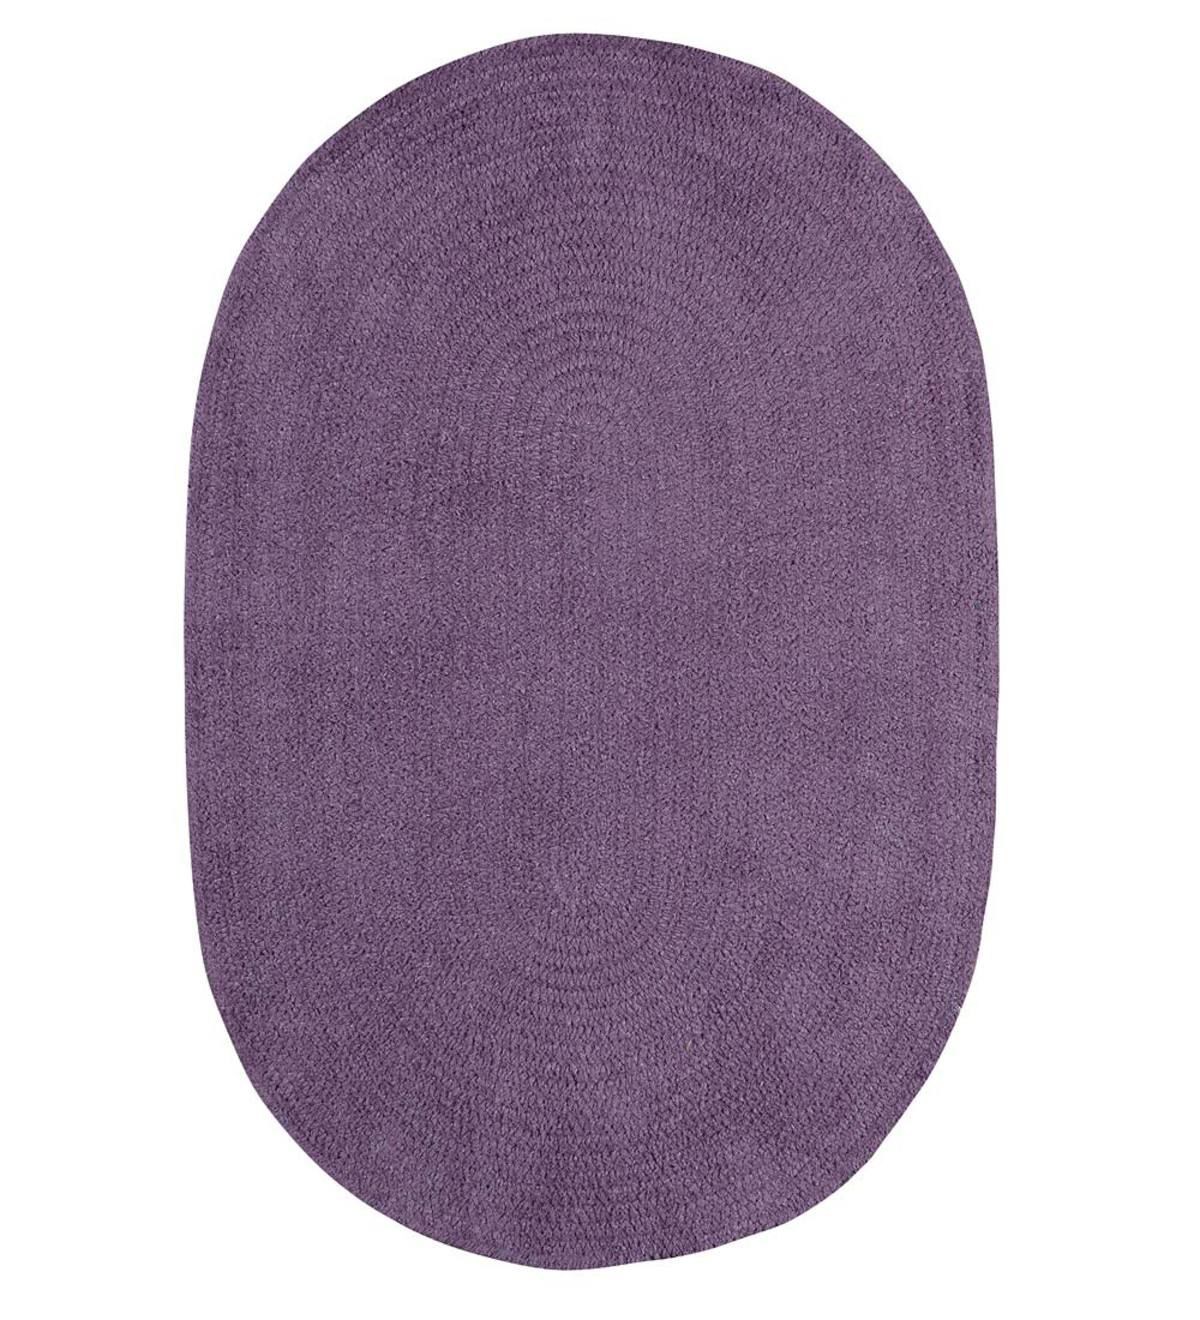 Chenille Oval Braided Area Rug, 5' x 8' - Wistful Purple